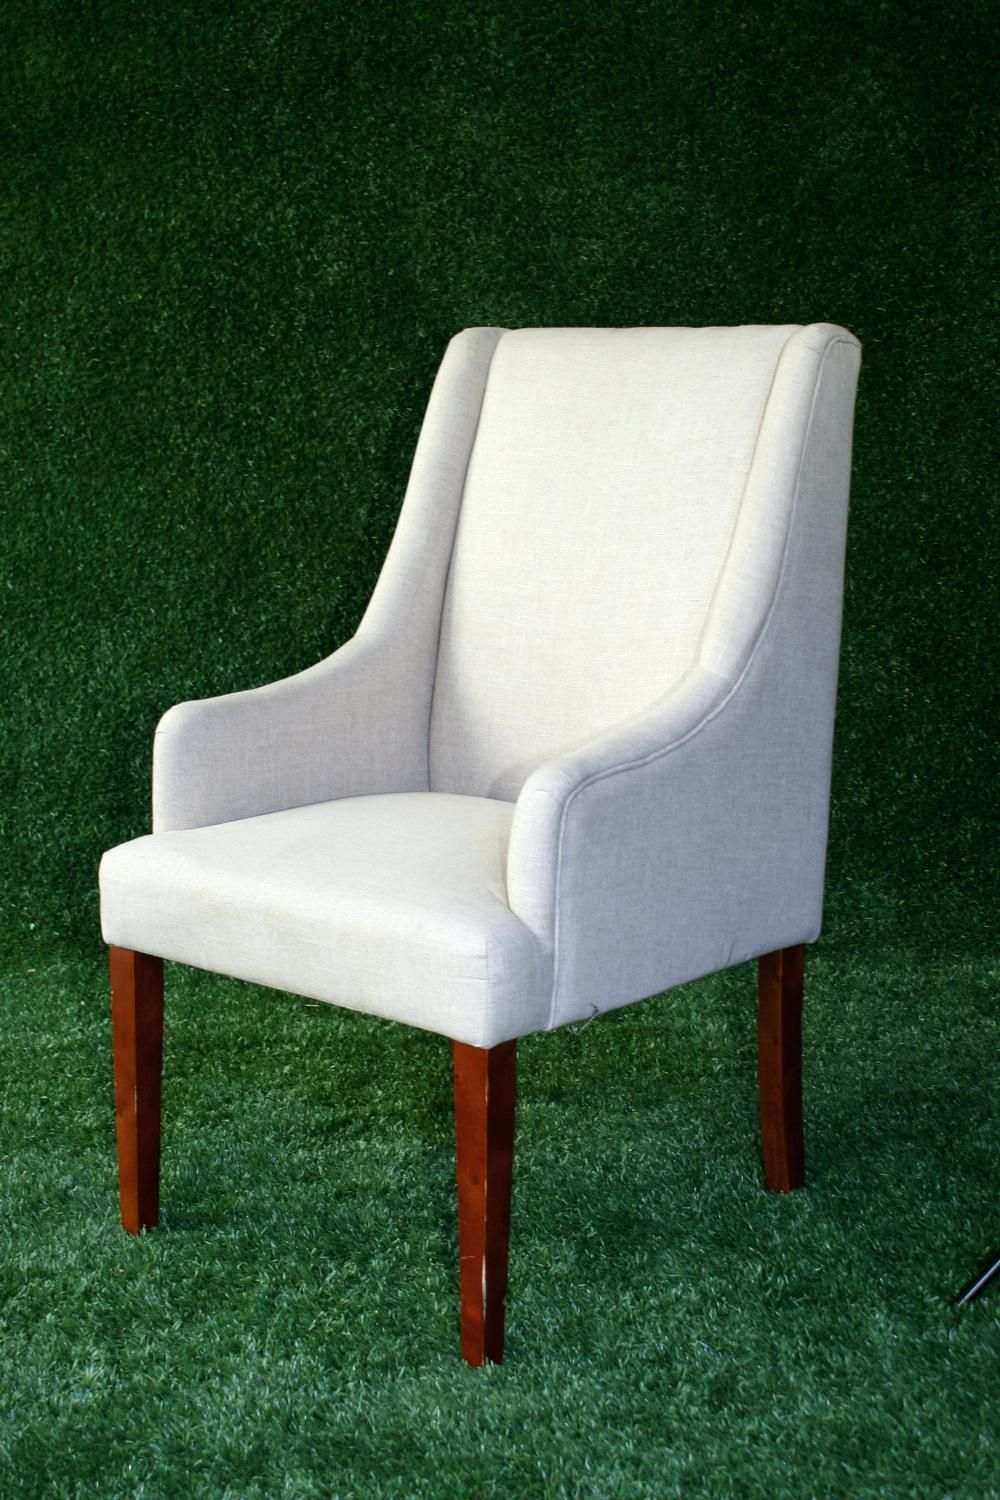 Beau 55+ High End Accent Chairs   Best Bedroom Furniture Check More At Http:/